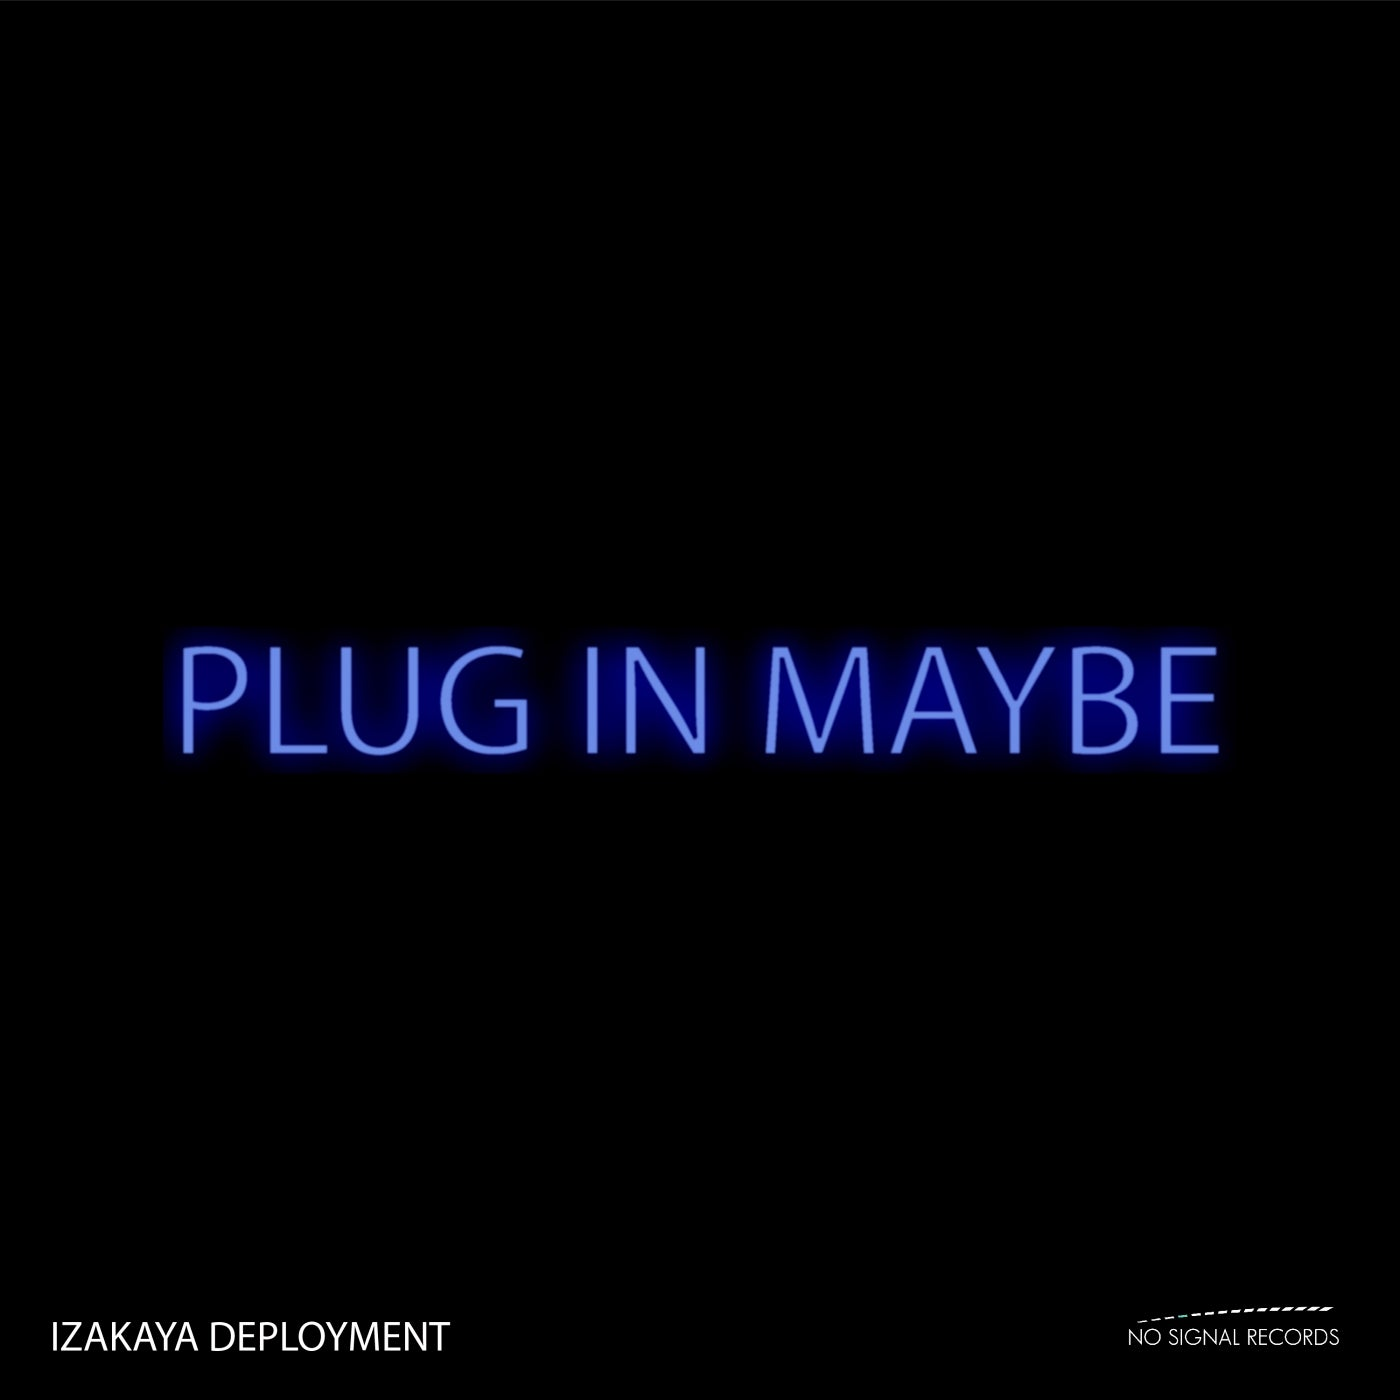 Plug in Maybe